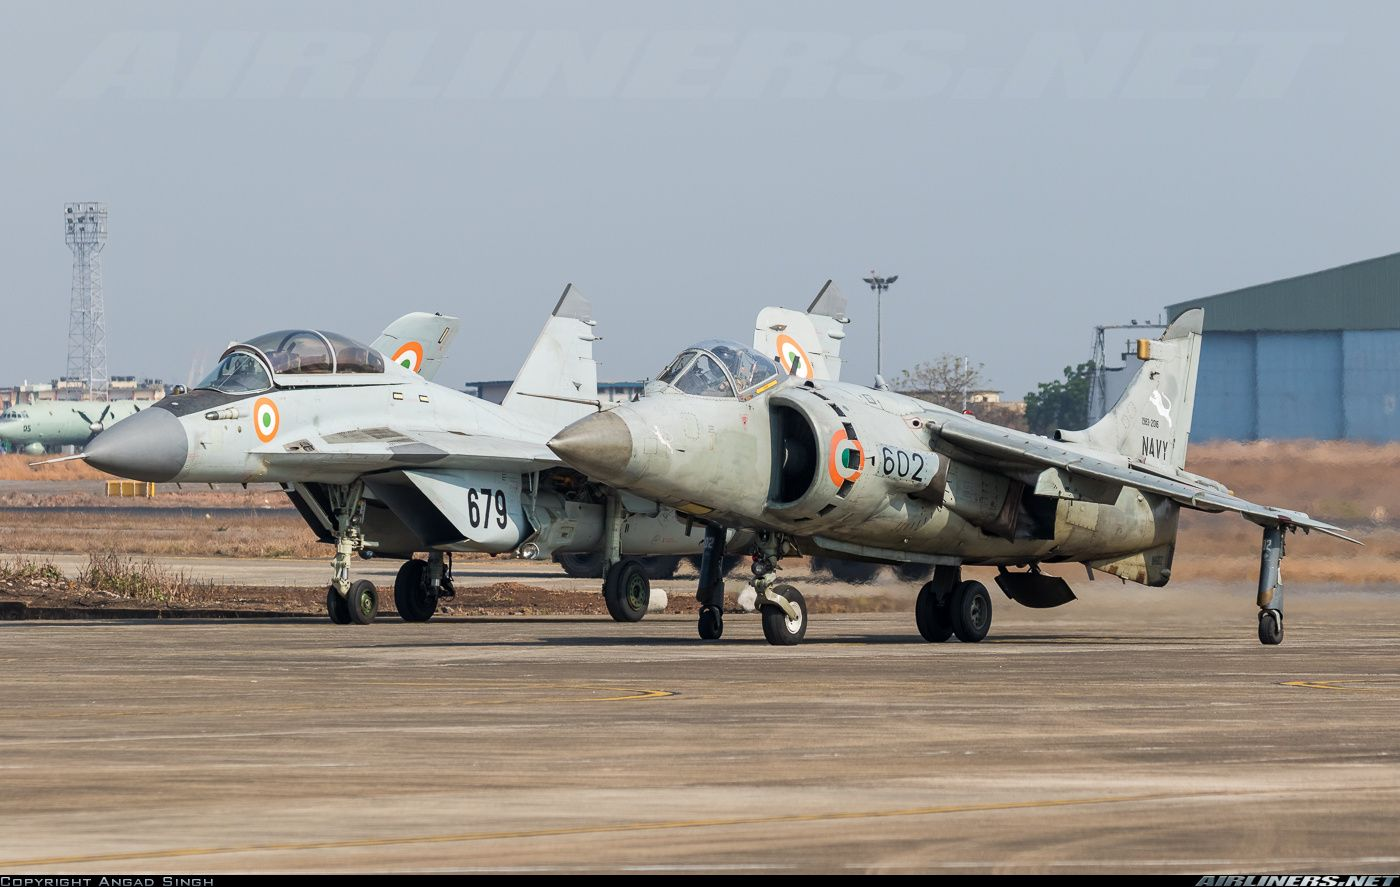 Indian Navy MiG29KUB and BAE Sea Harrier together at Goa